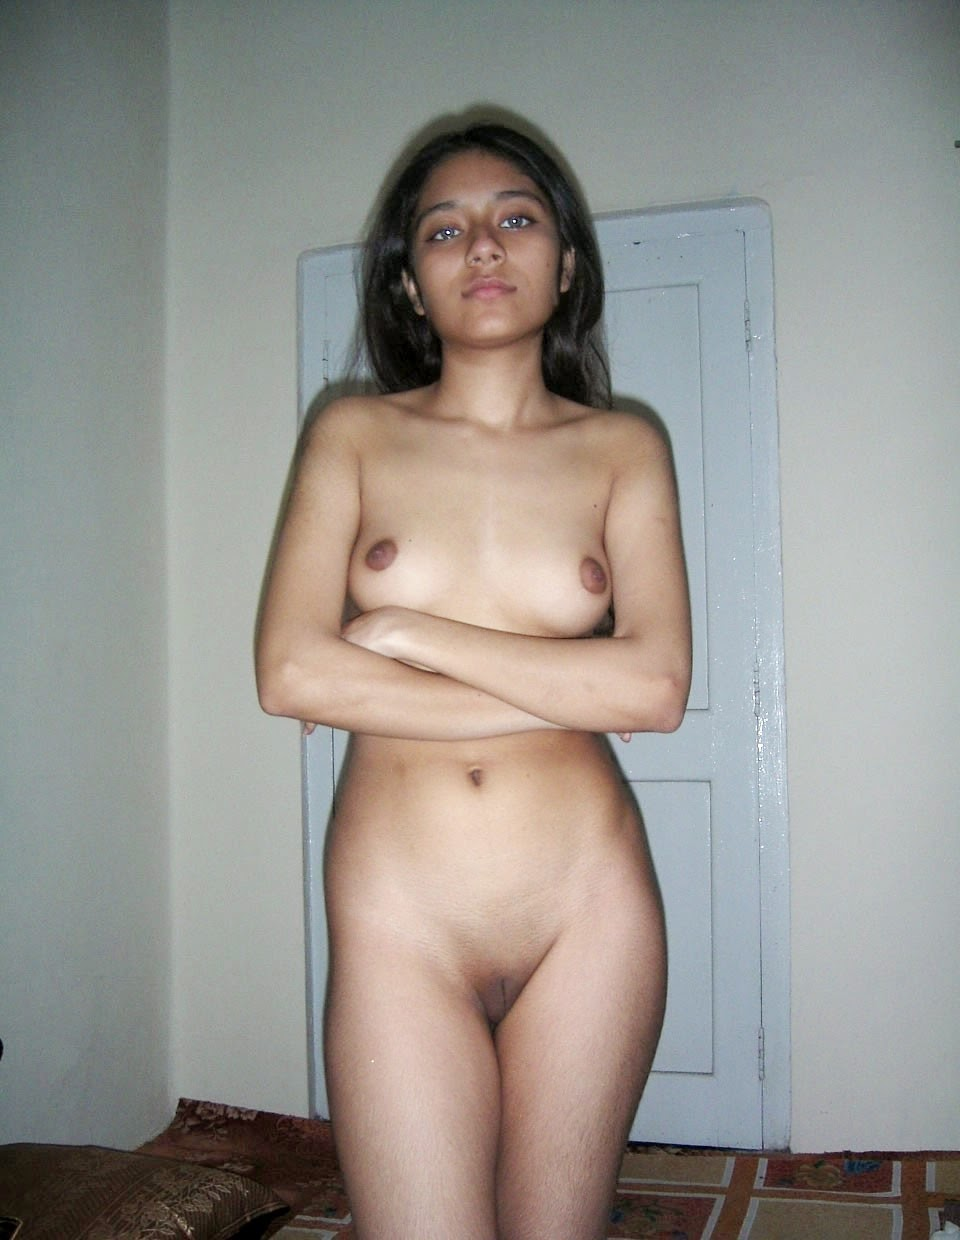 Consider, that Beautiful sexy hot young indian babes